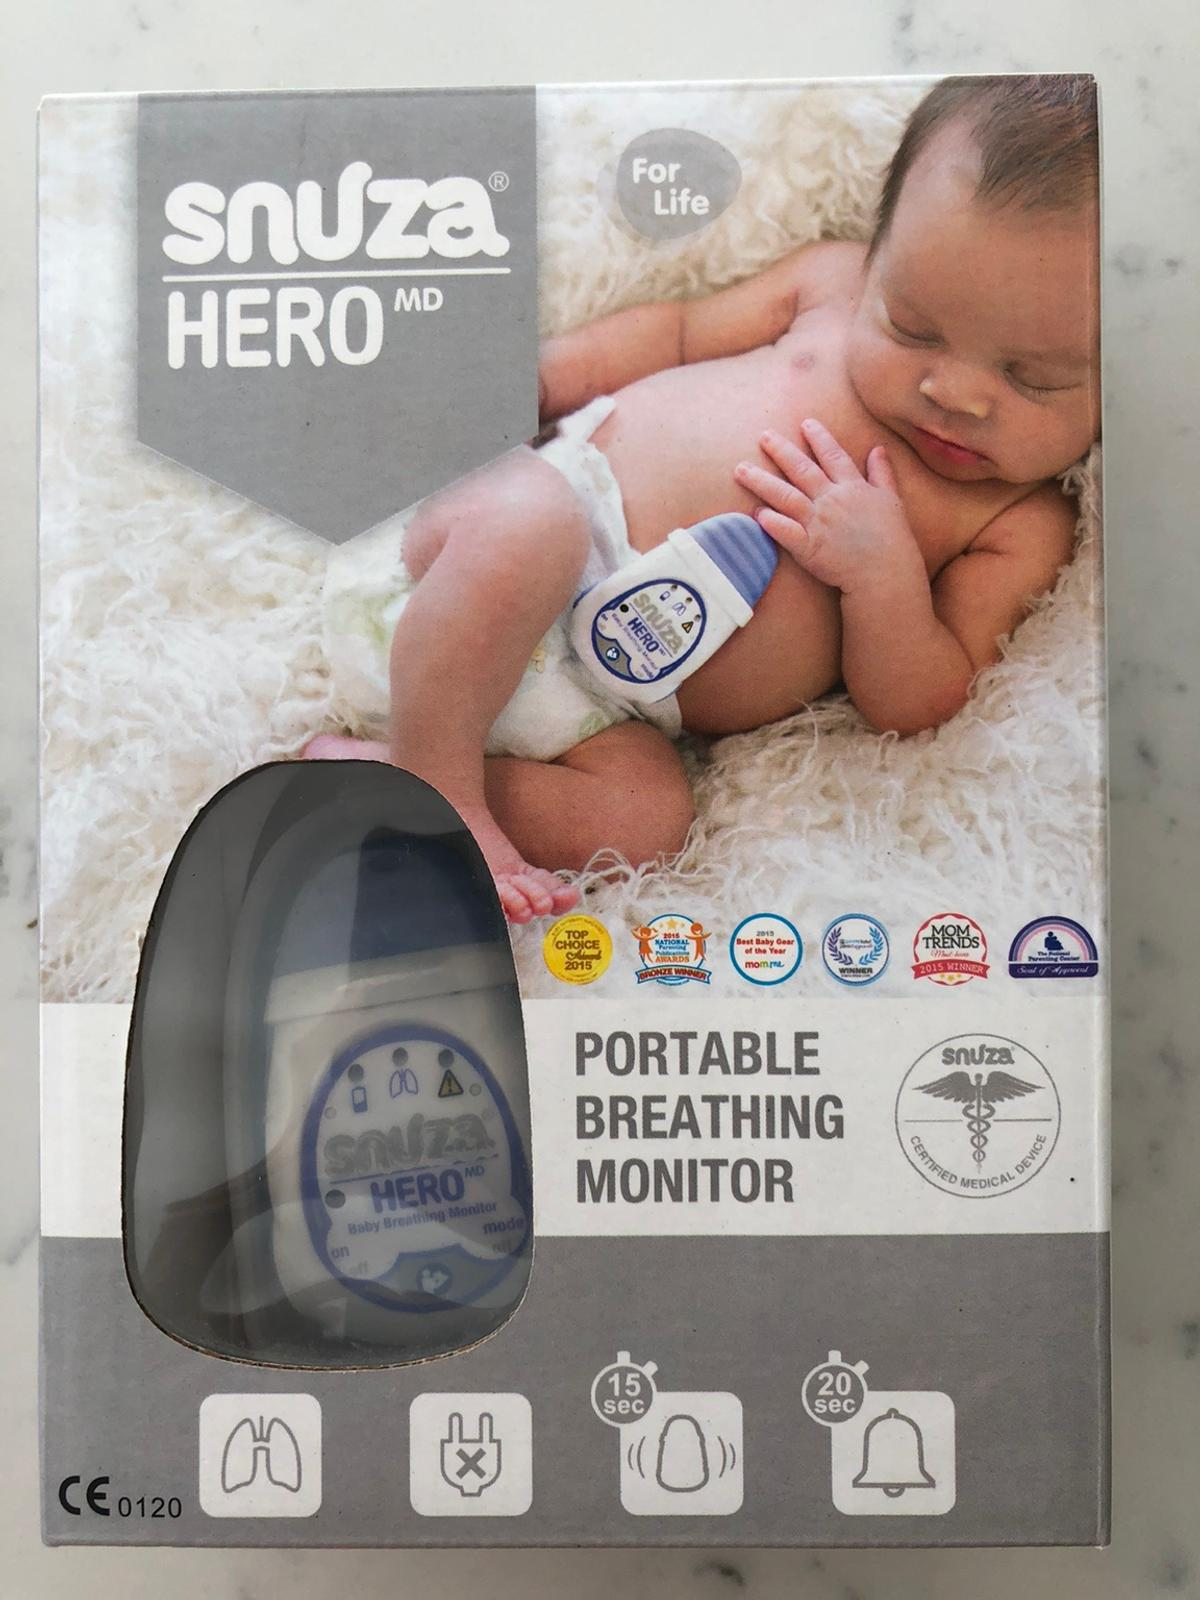 2 portable breathing monitors in original packaging with instructions.